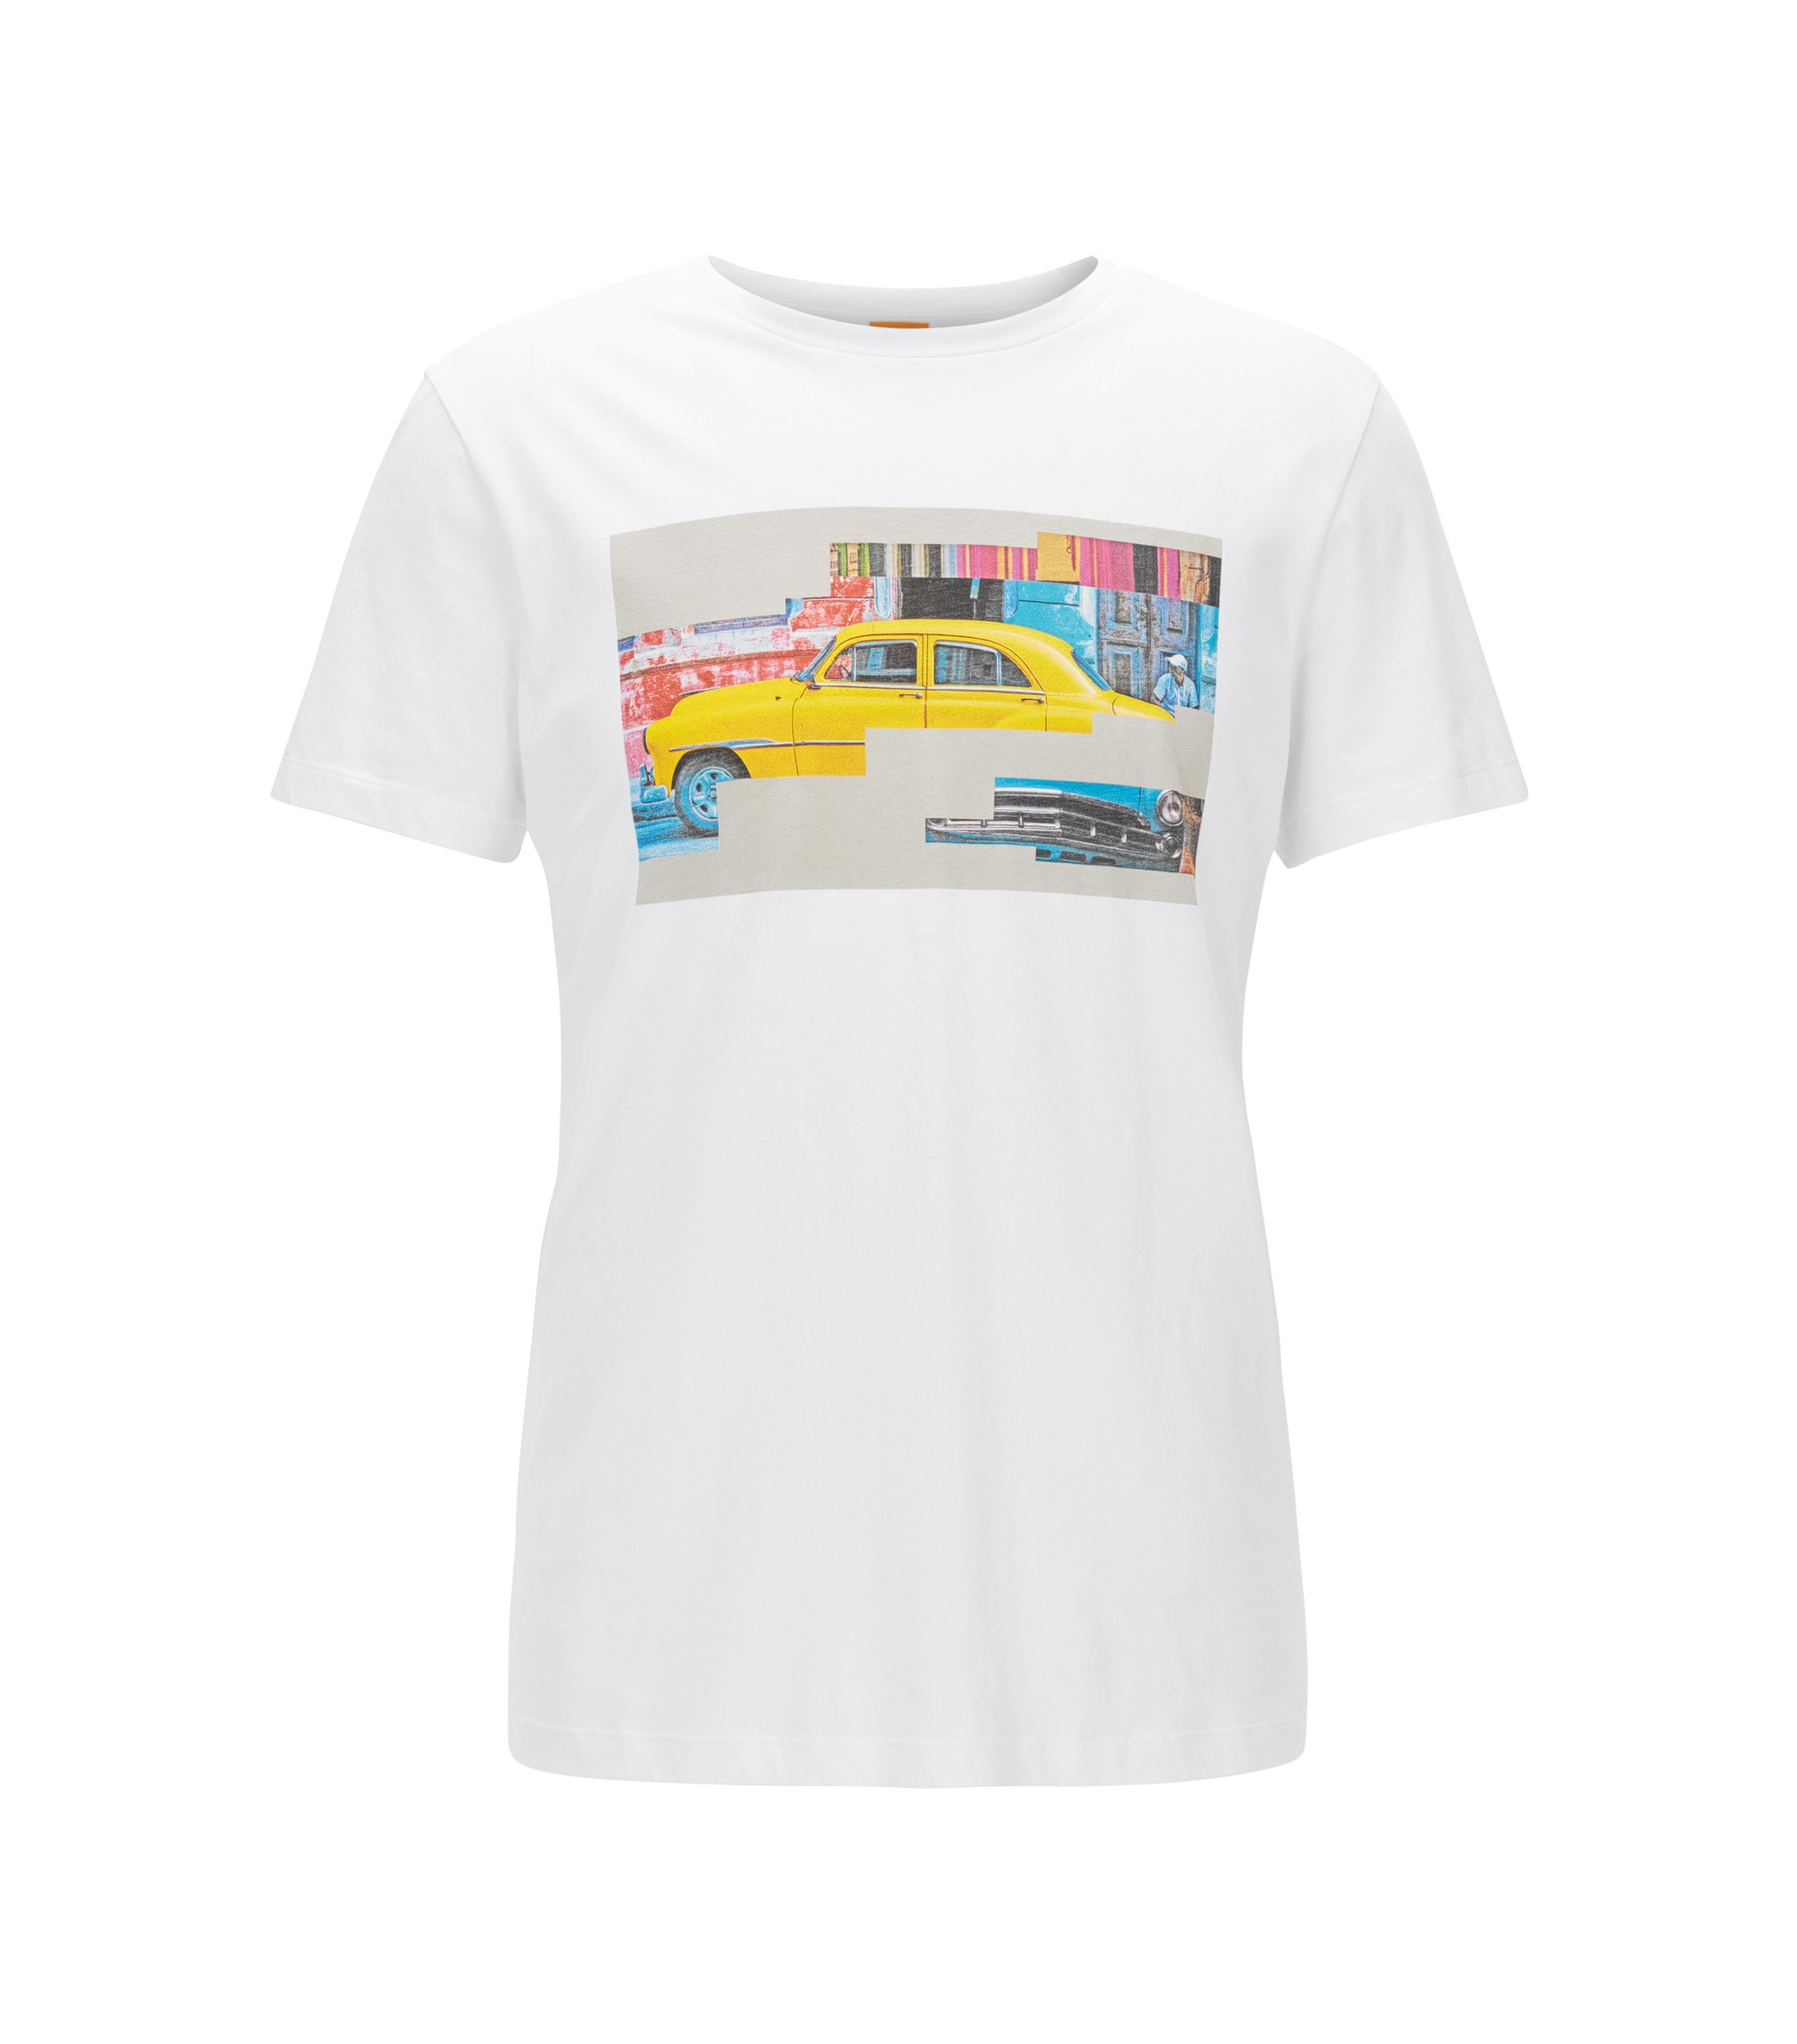 T-shirt regular fit in cotone con motivo cubano, Bianco